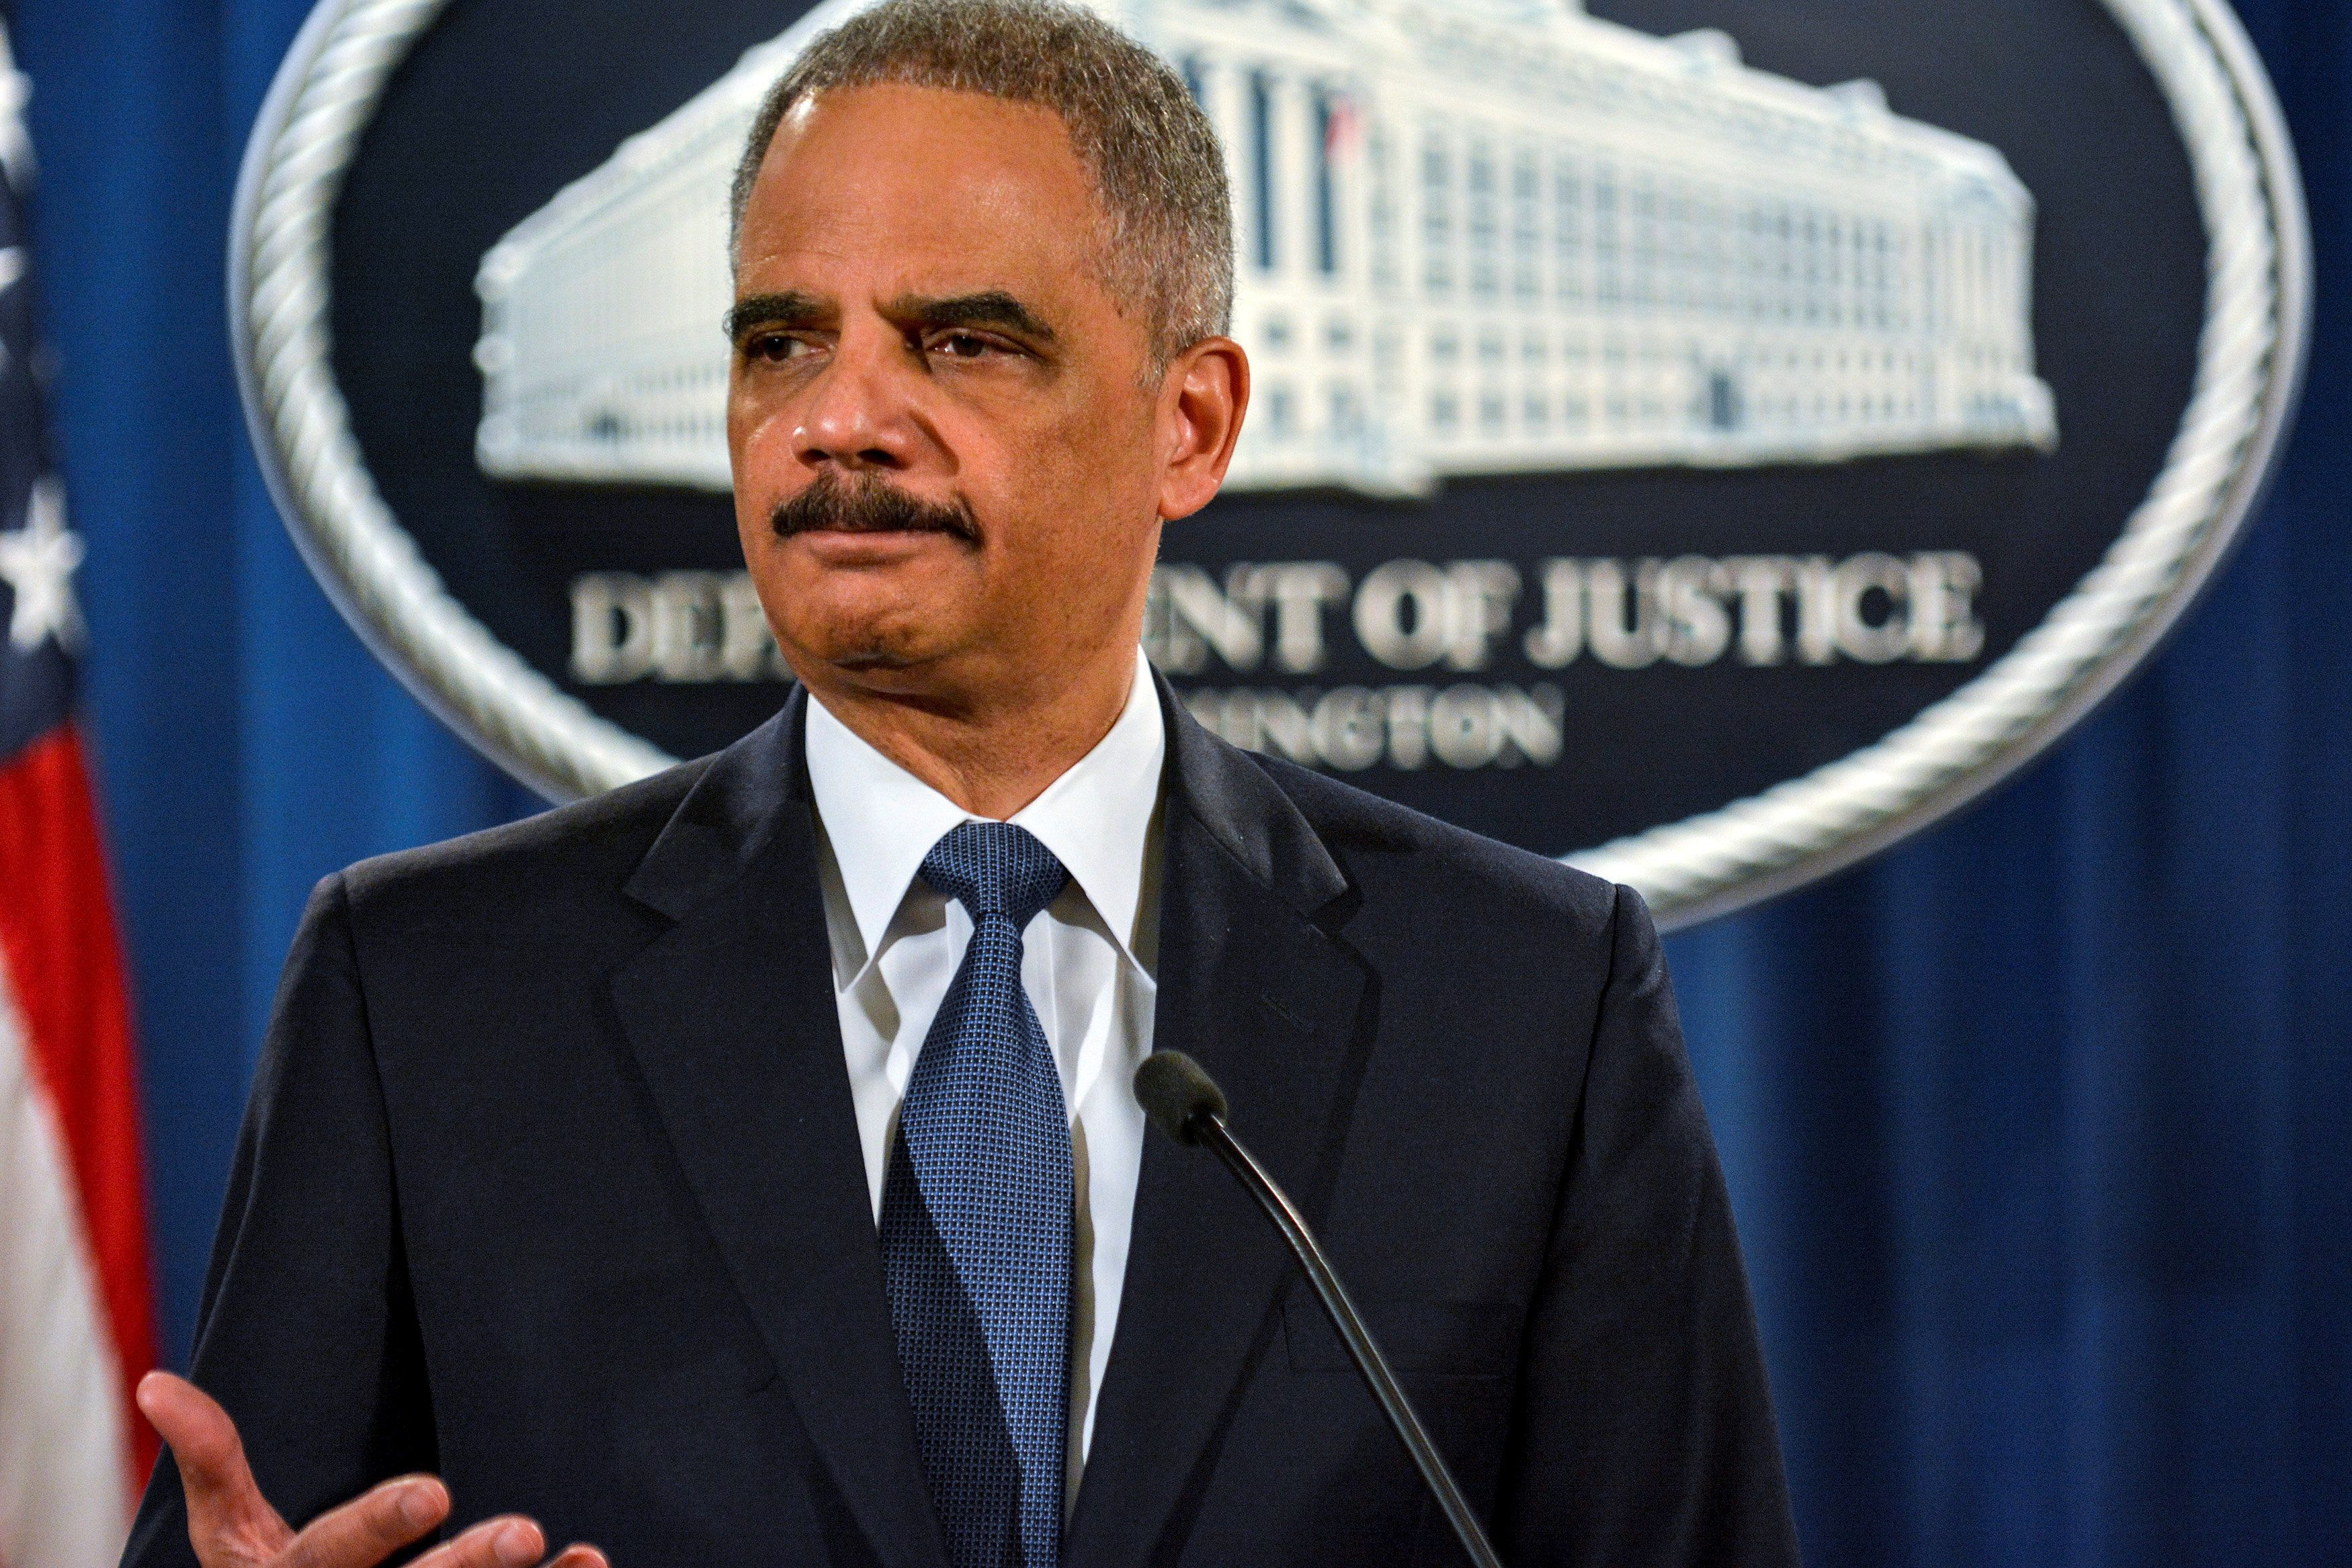 Eric Holder: Harvey Weinstein Revelations Must Prompt Culture Shift On Sexual Harassment